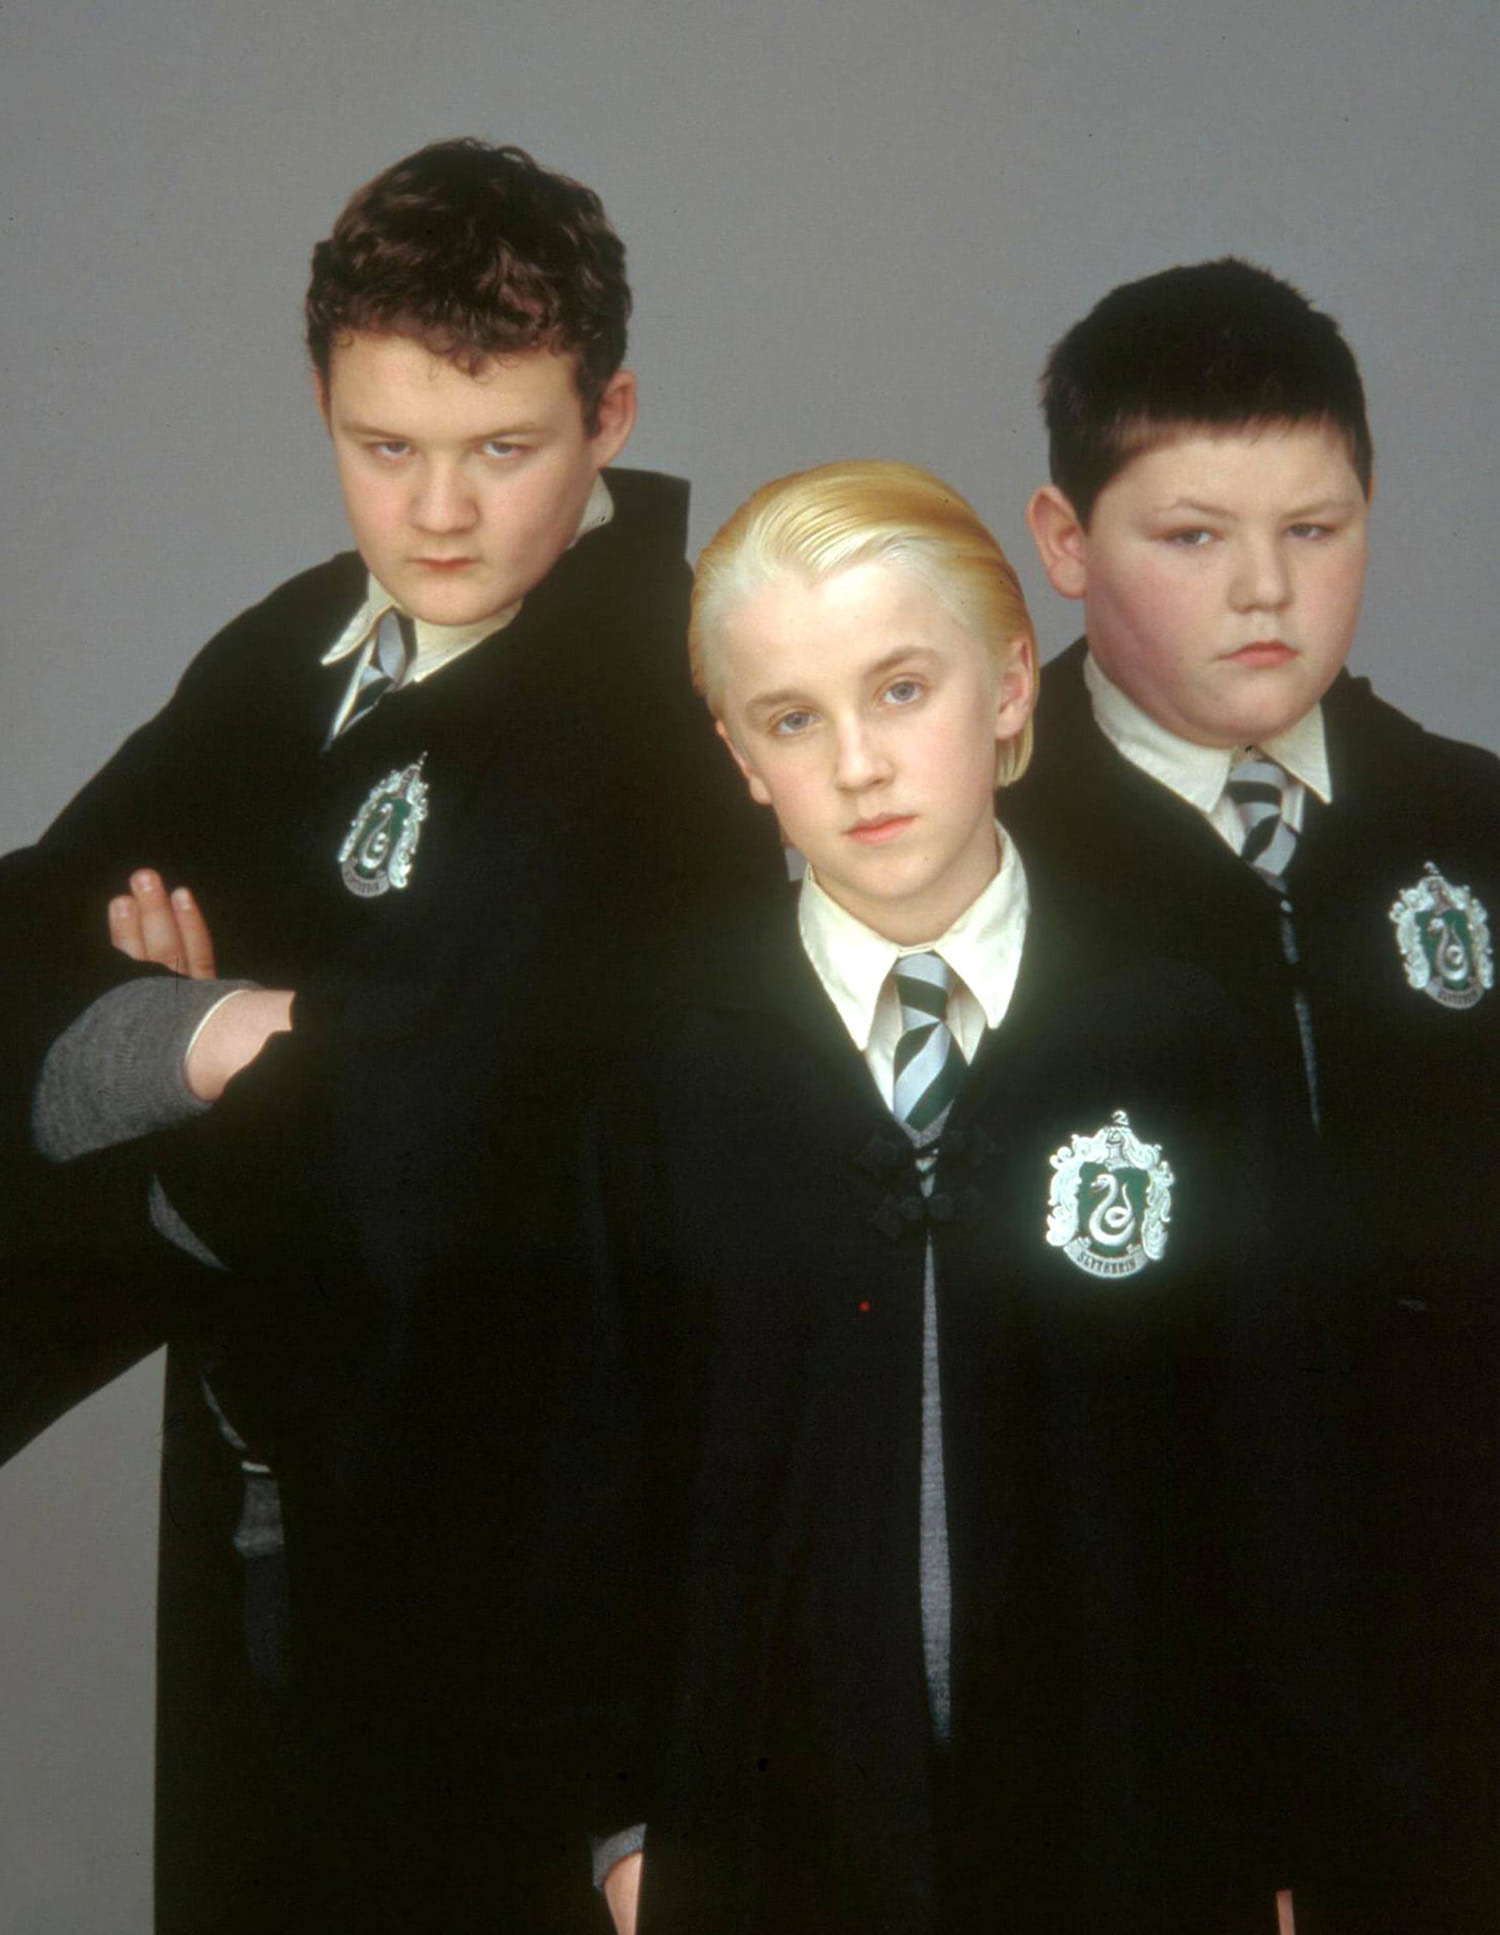 Portrait of Goyle, Draco and Crabbe